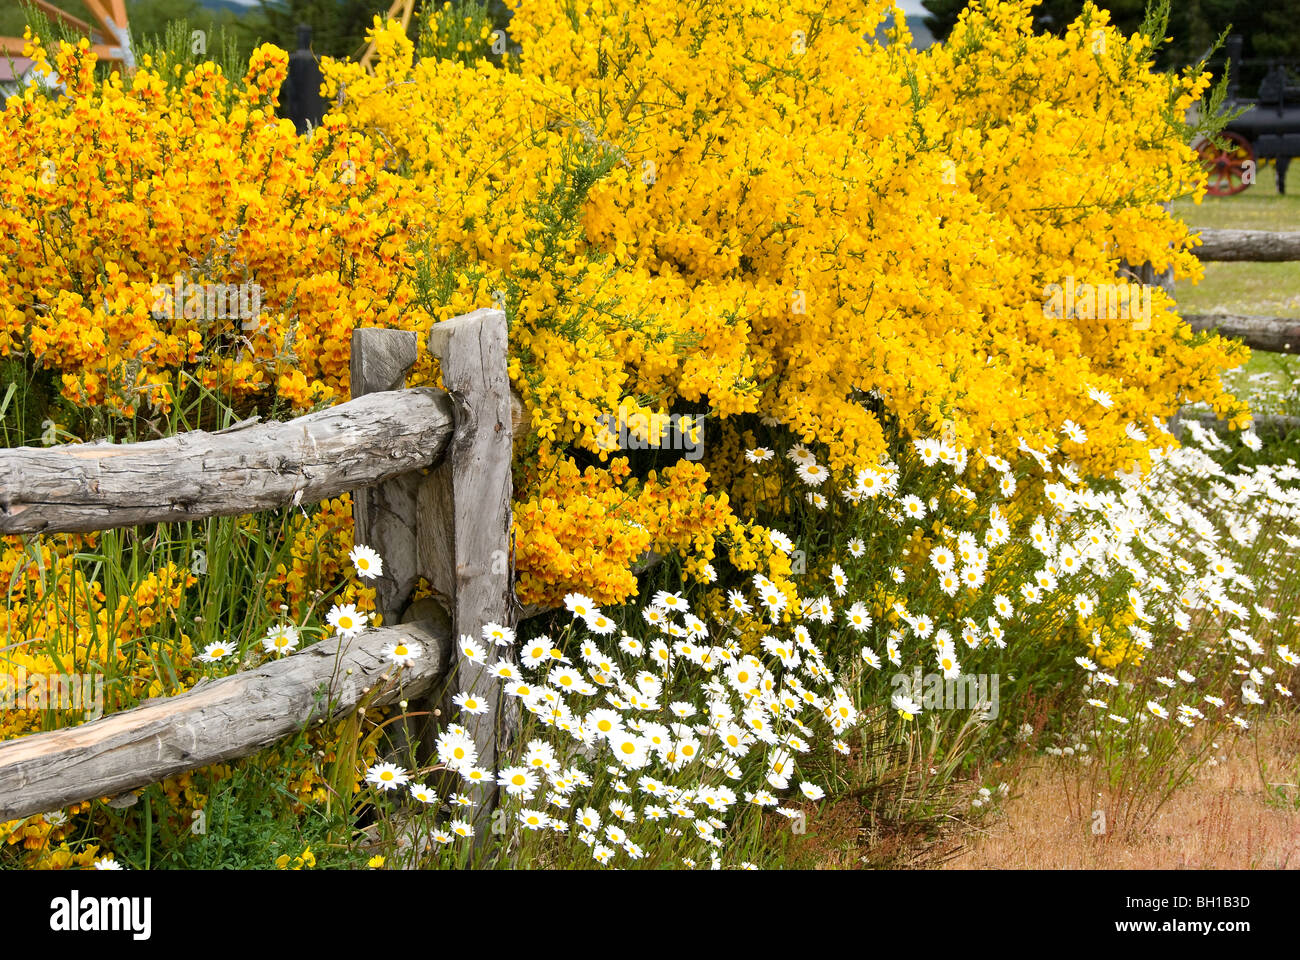 White daisies and yellow gorse flowers in Punta Arenas, Chile - Stock Image